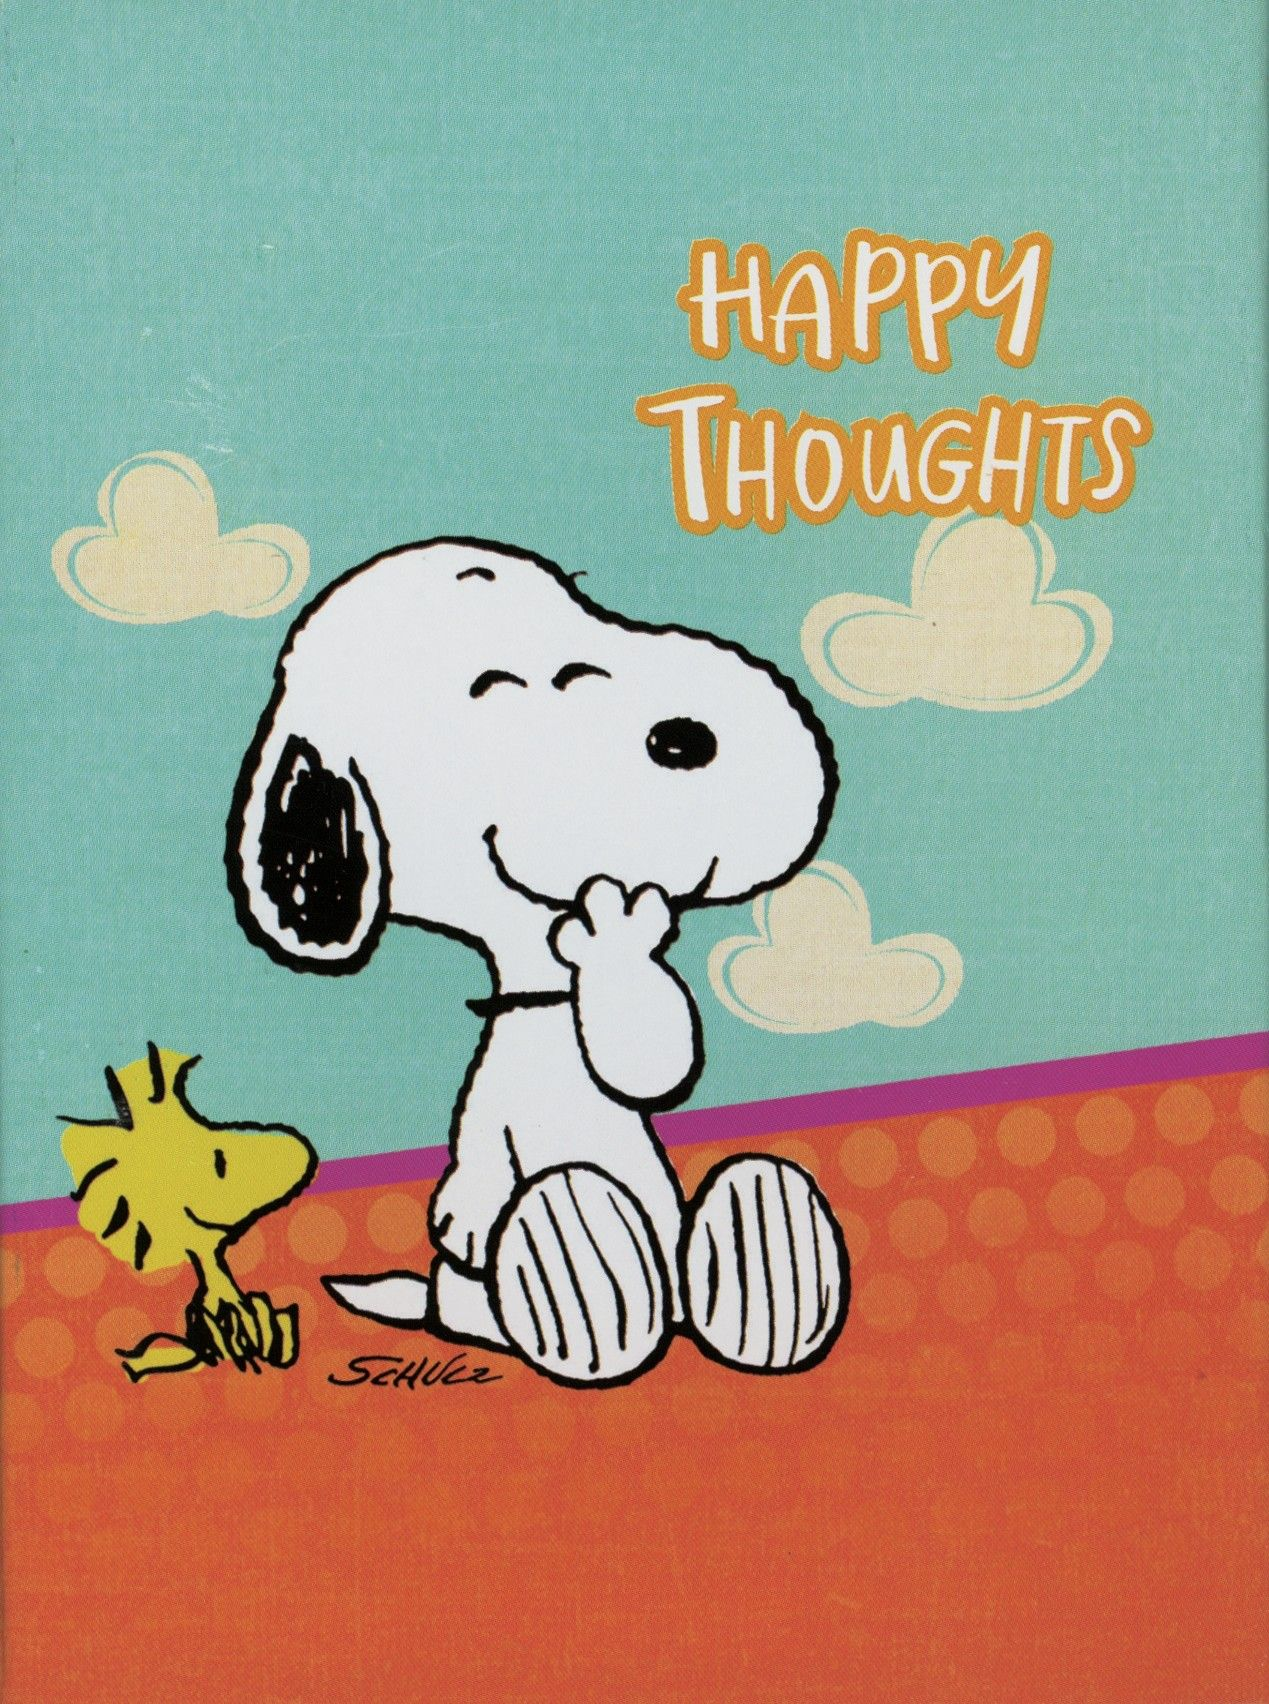 Snoopy Bilder Mit Sprüchen Happy Thoughts From Snoopy And Woodstock Snoopy Ich